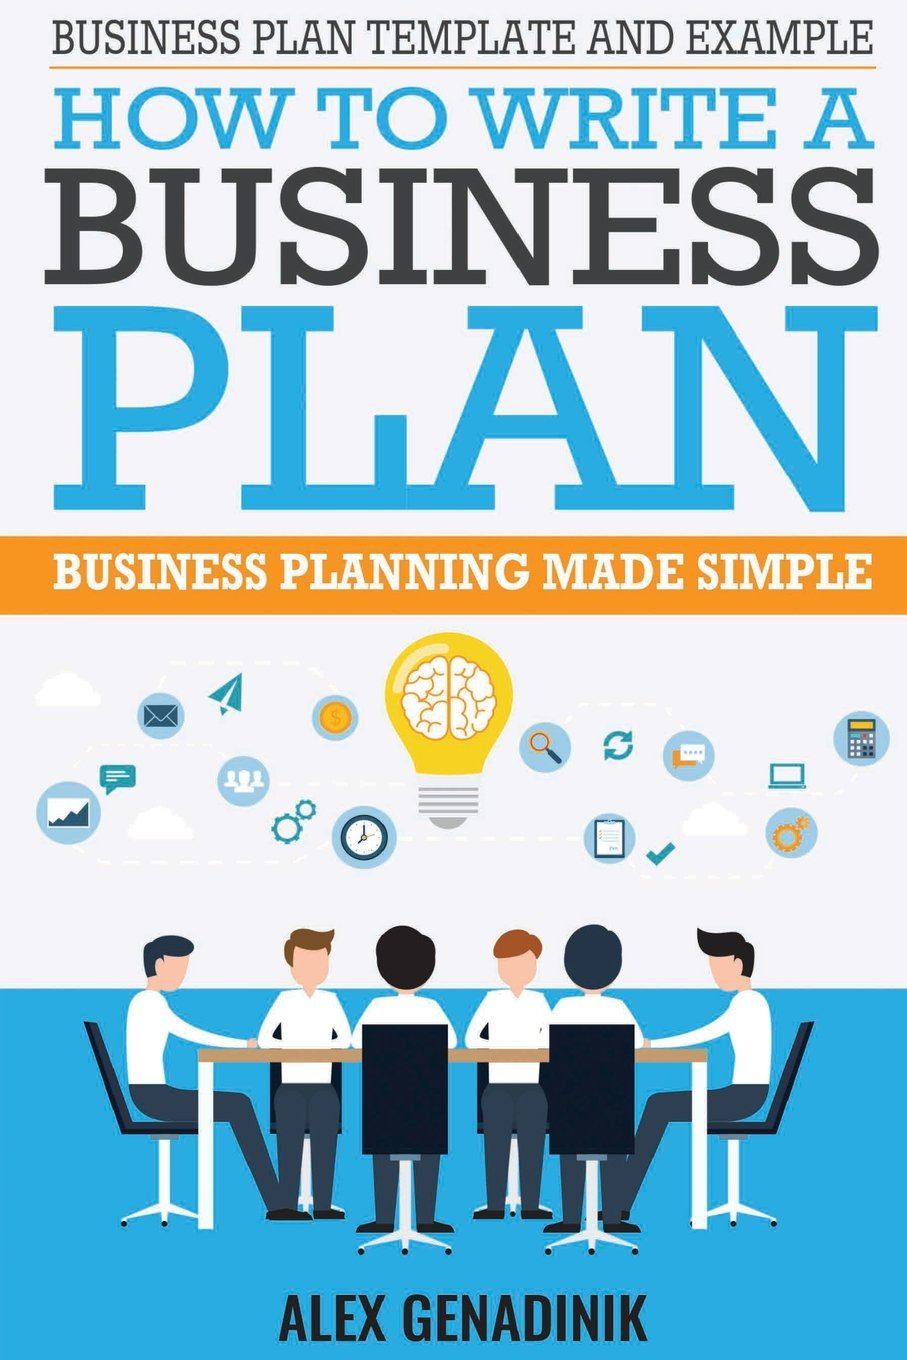 Business plan template and example how to write a business plan business plan template and example how to write a business plan business planning made simple alex genadinik 9781519741783 amazon books flashek Image collections